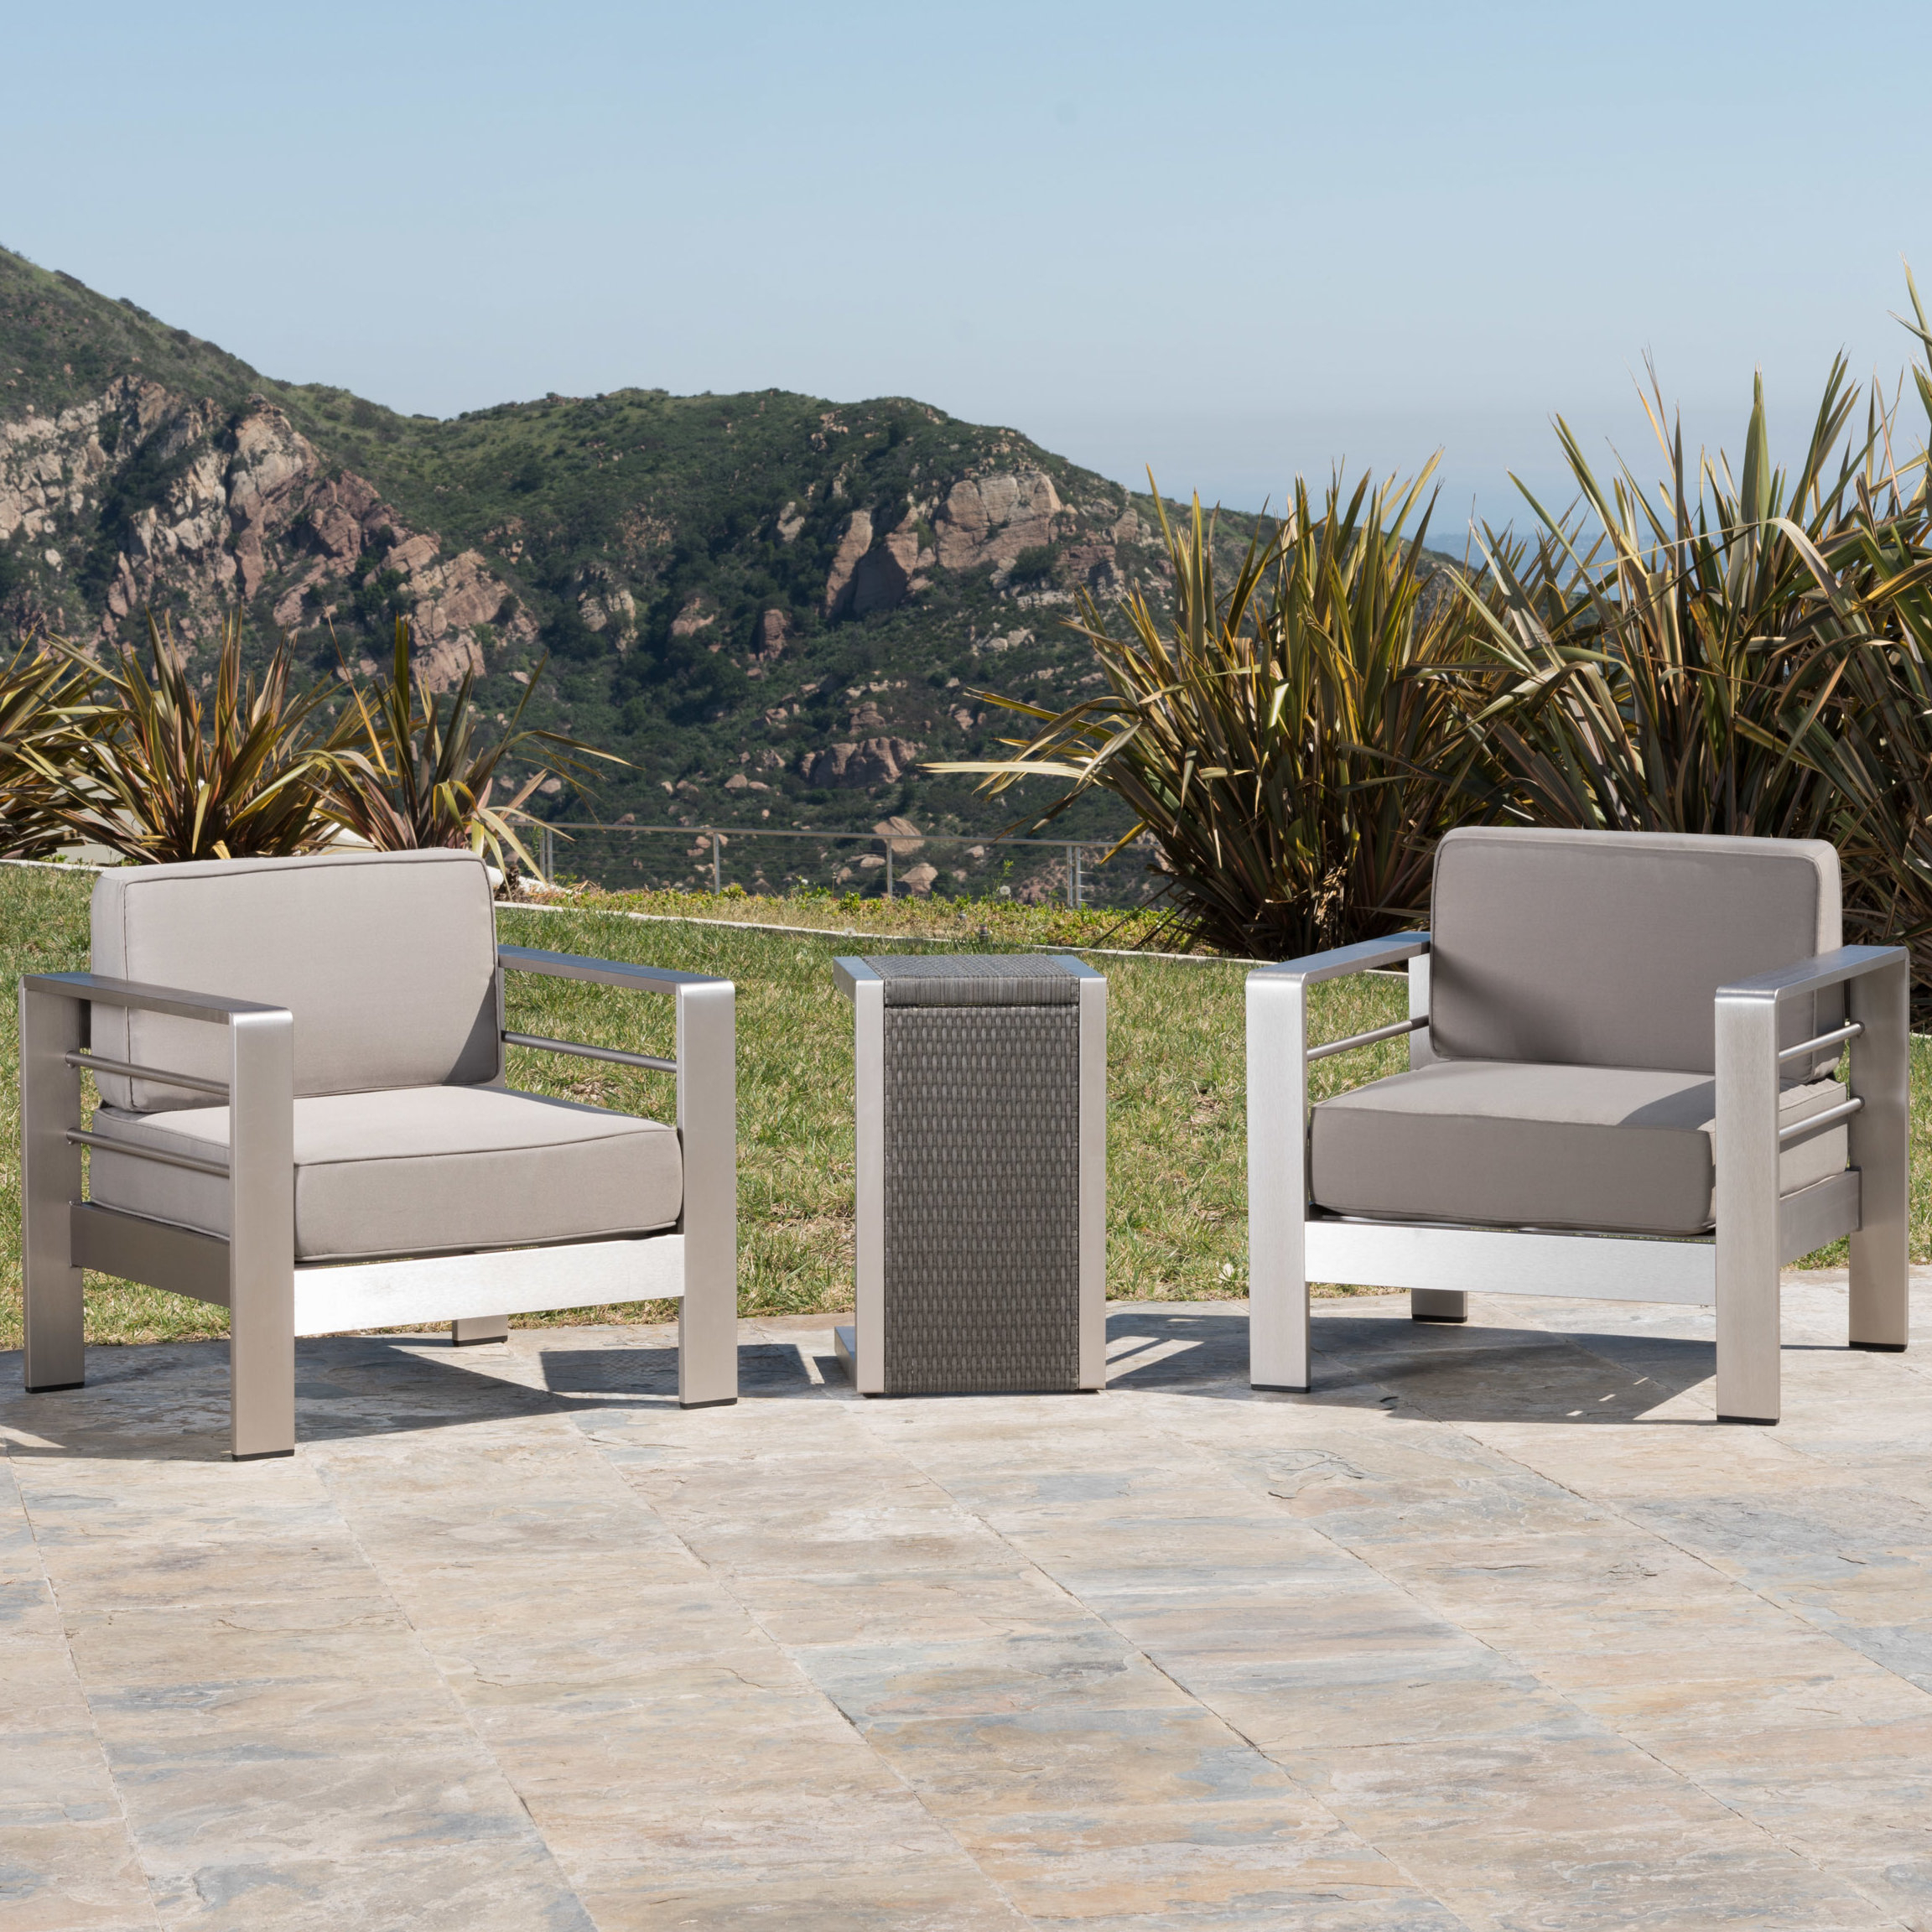 2019 Royalston 3 Piece Conversation Set With Cushions Intended For Royalston Patio Sofas With Cushions (View 2 of 20)